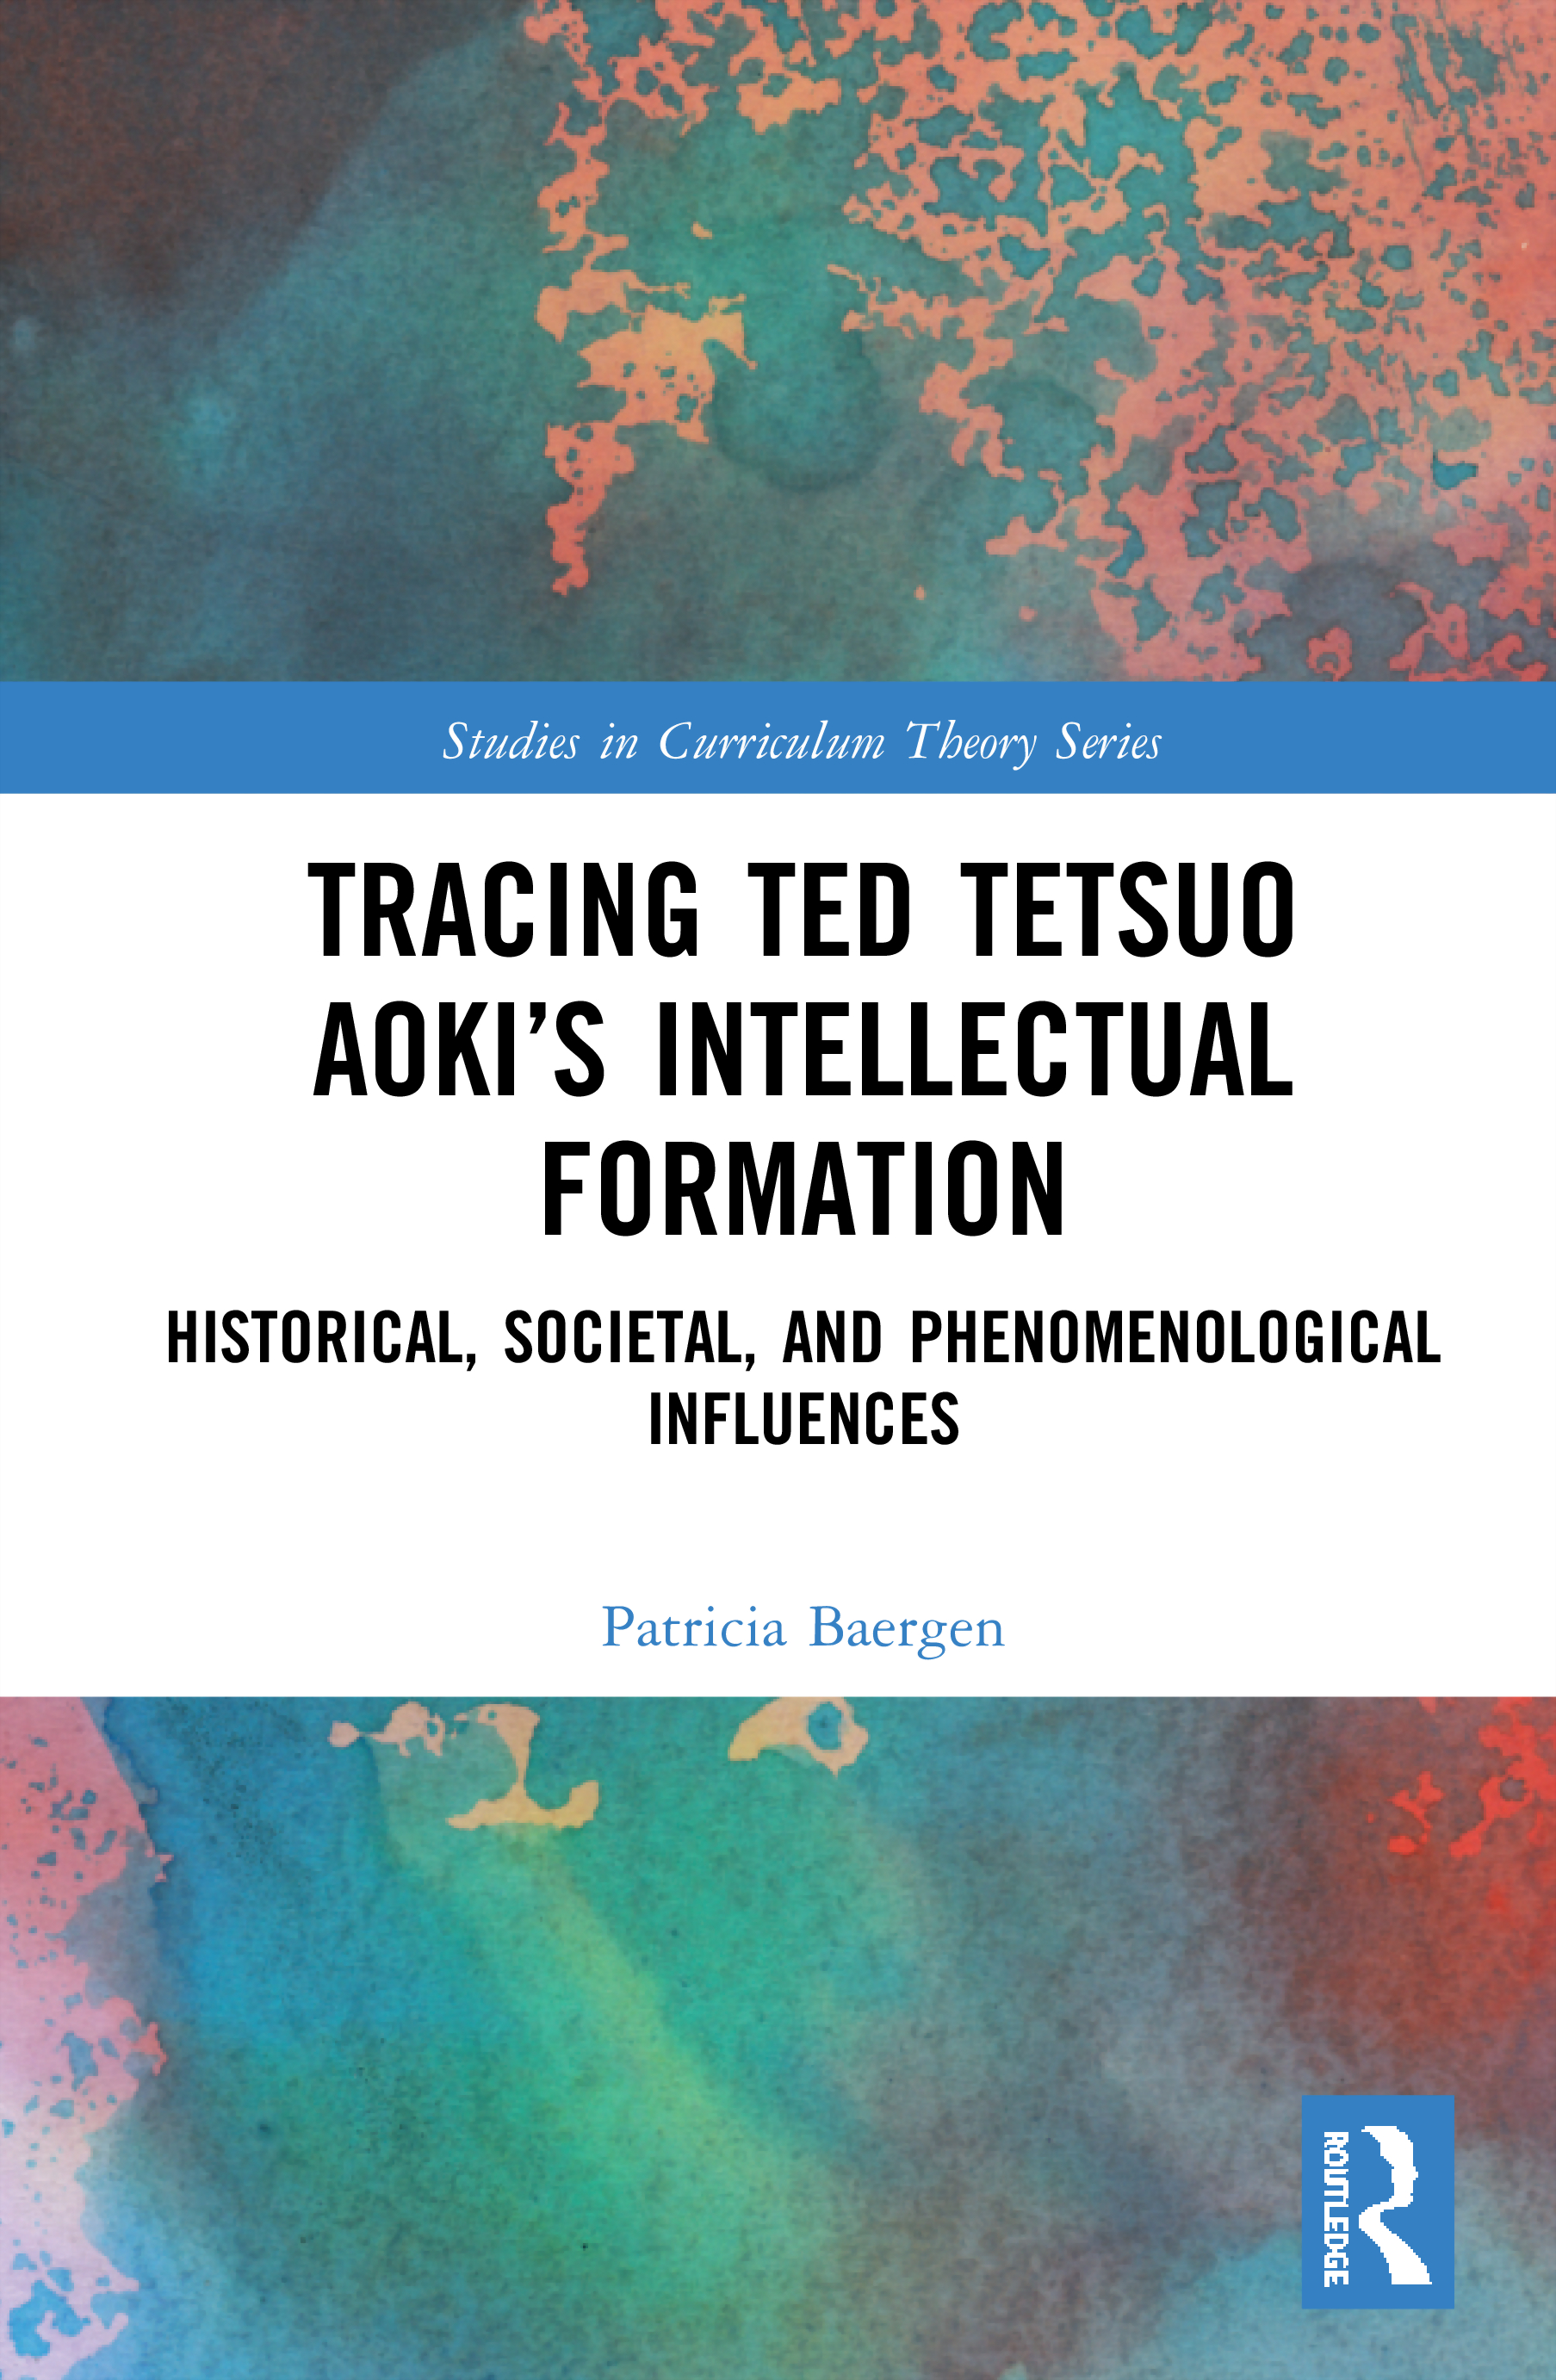 Tracing Ted Tetsuo Aoki's Intellectual Formation: Historical, Societal, and Phenomenological Influences book cover